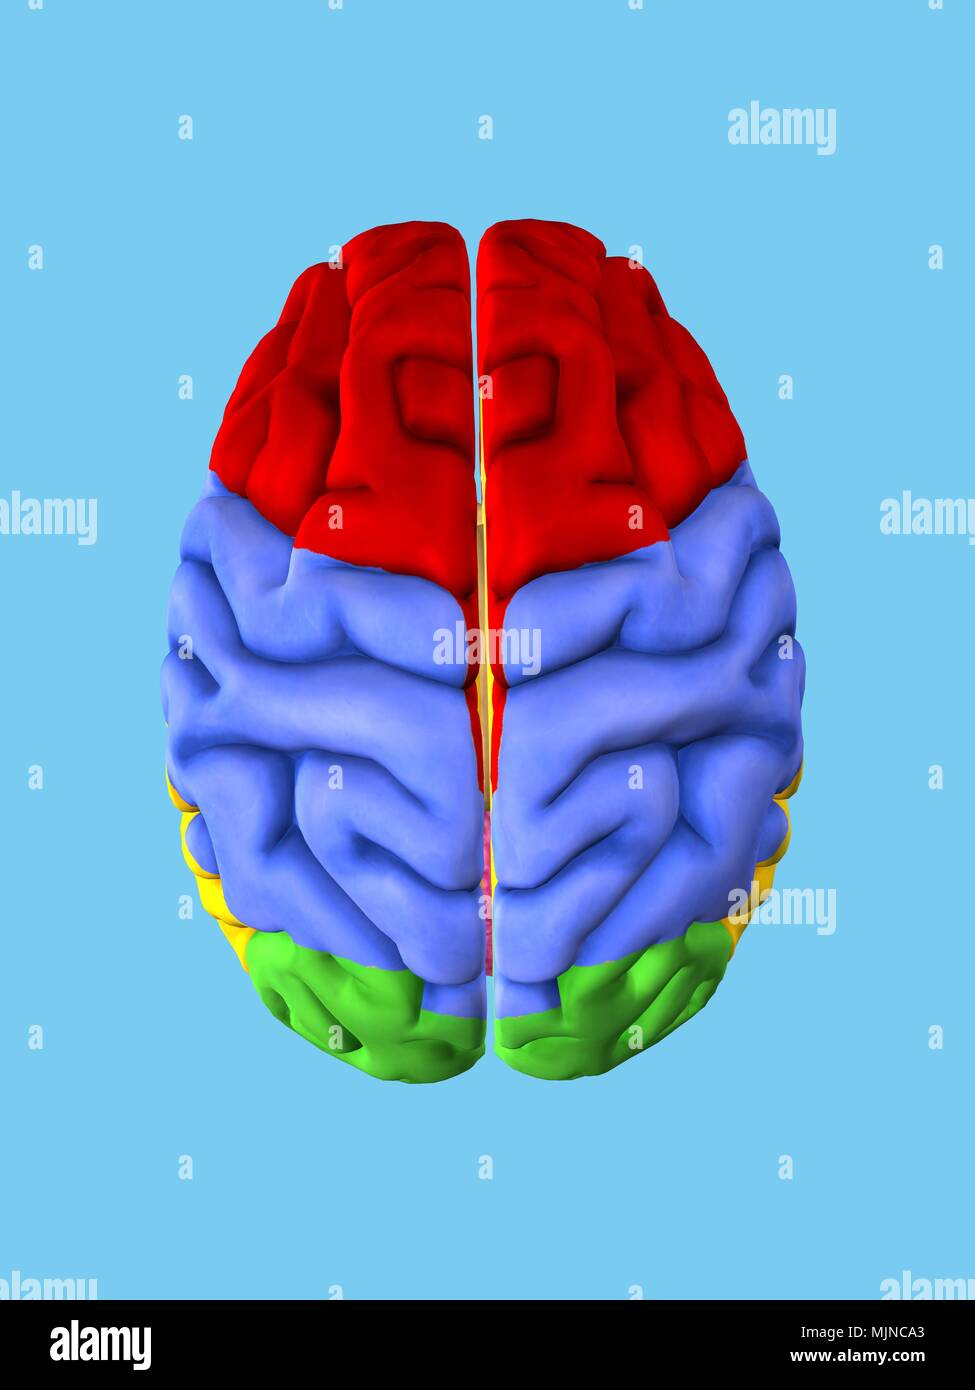 Regions Of The Brain Stock Photo 183638171 Alamy